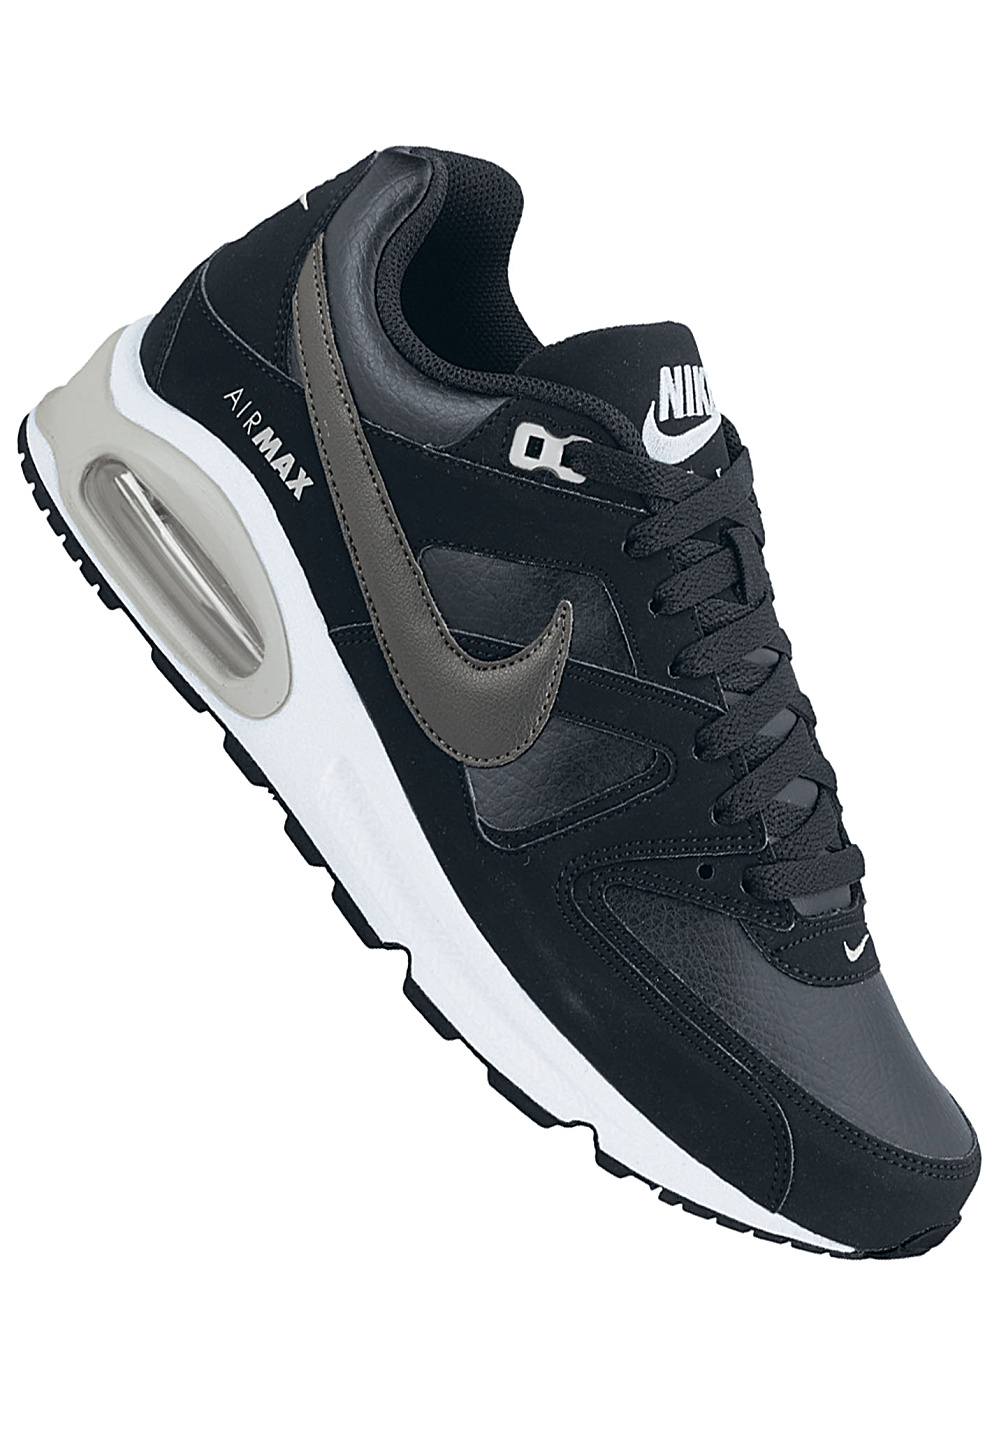 4b5e9b4206 Nike Air Max Command Leather Gray - Musée des impressionnismes Giverny